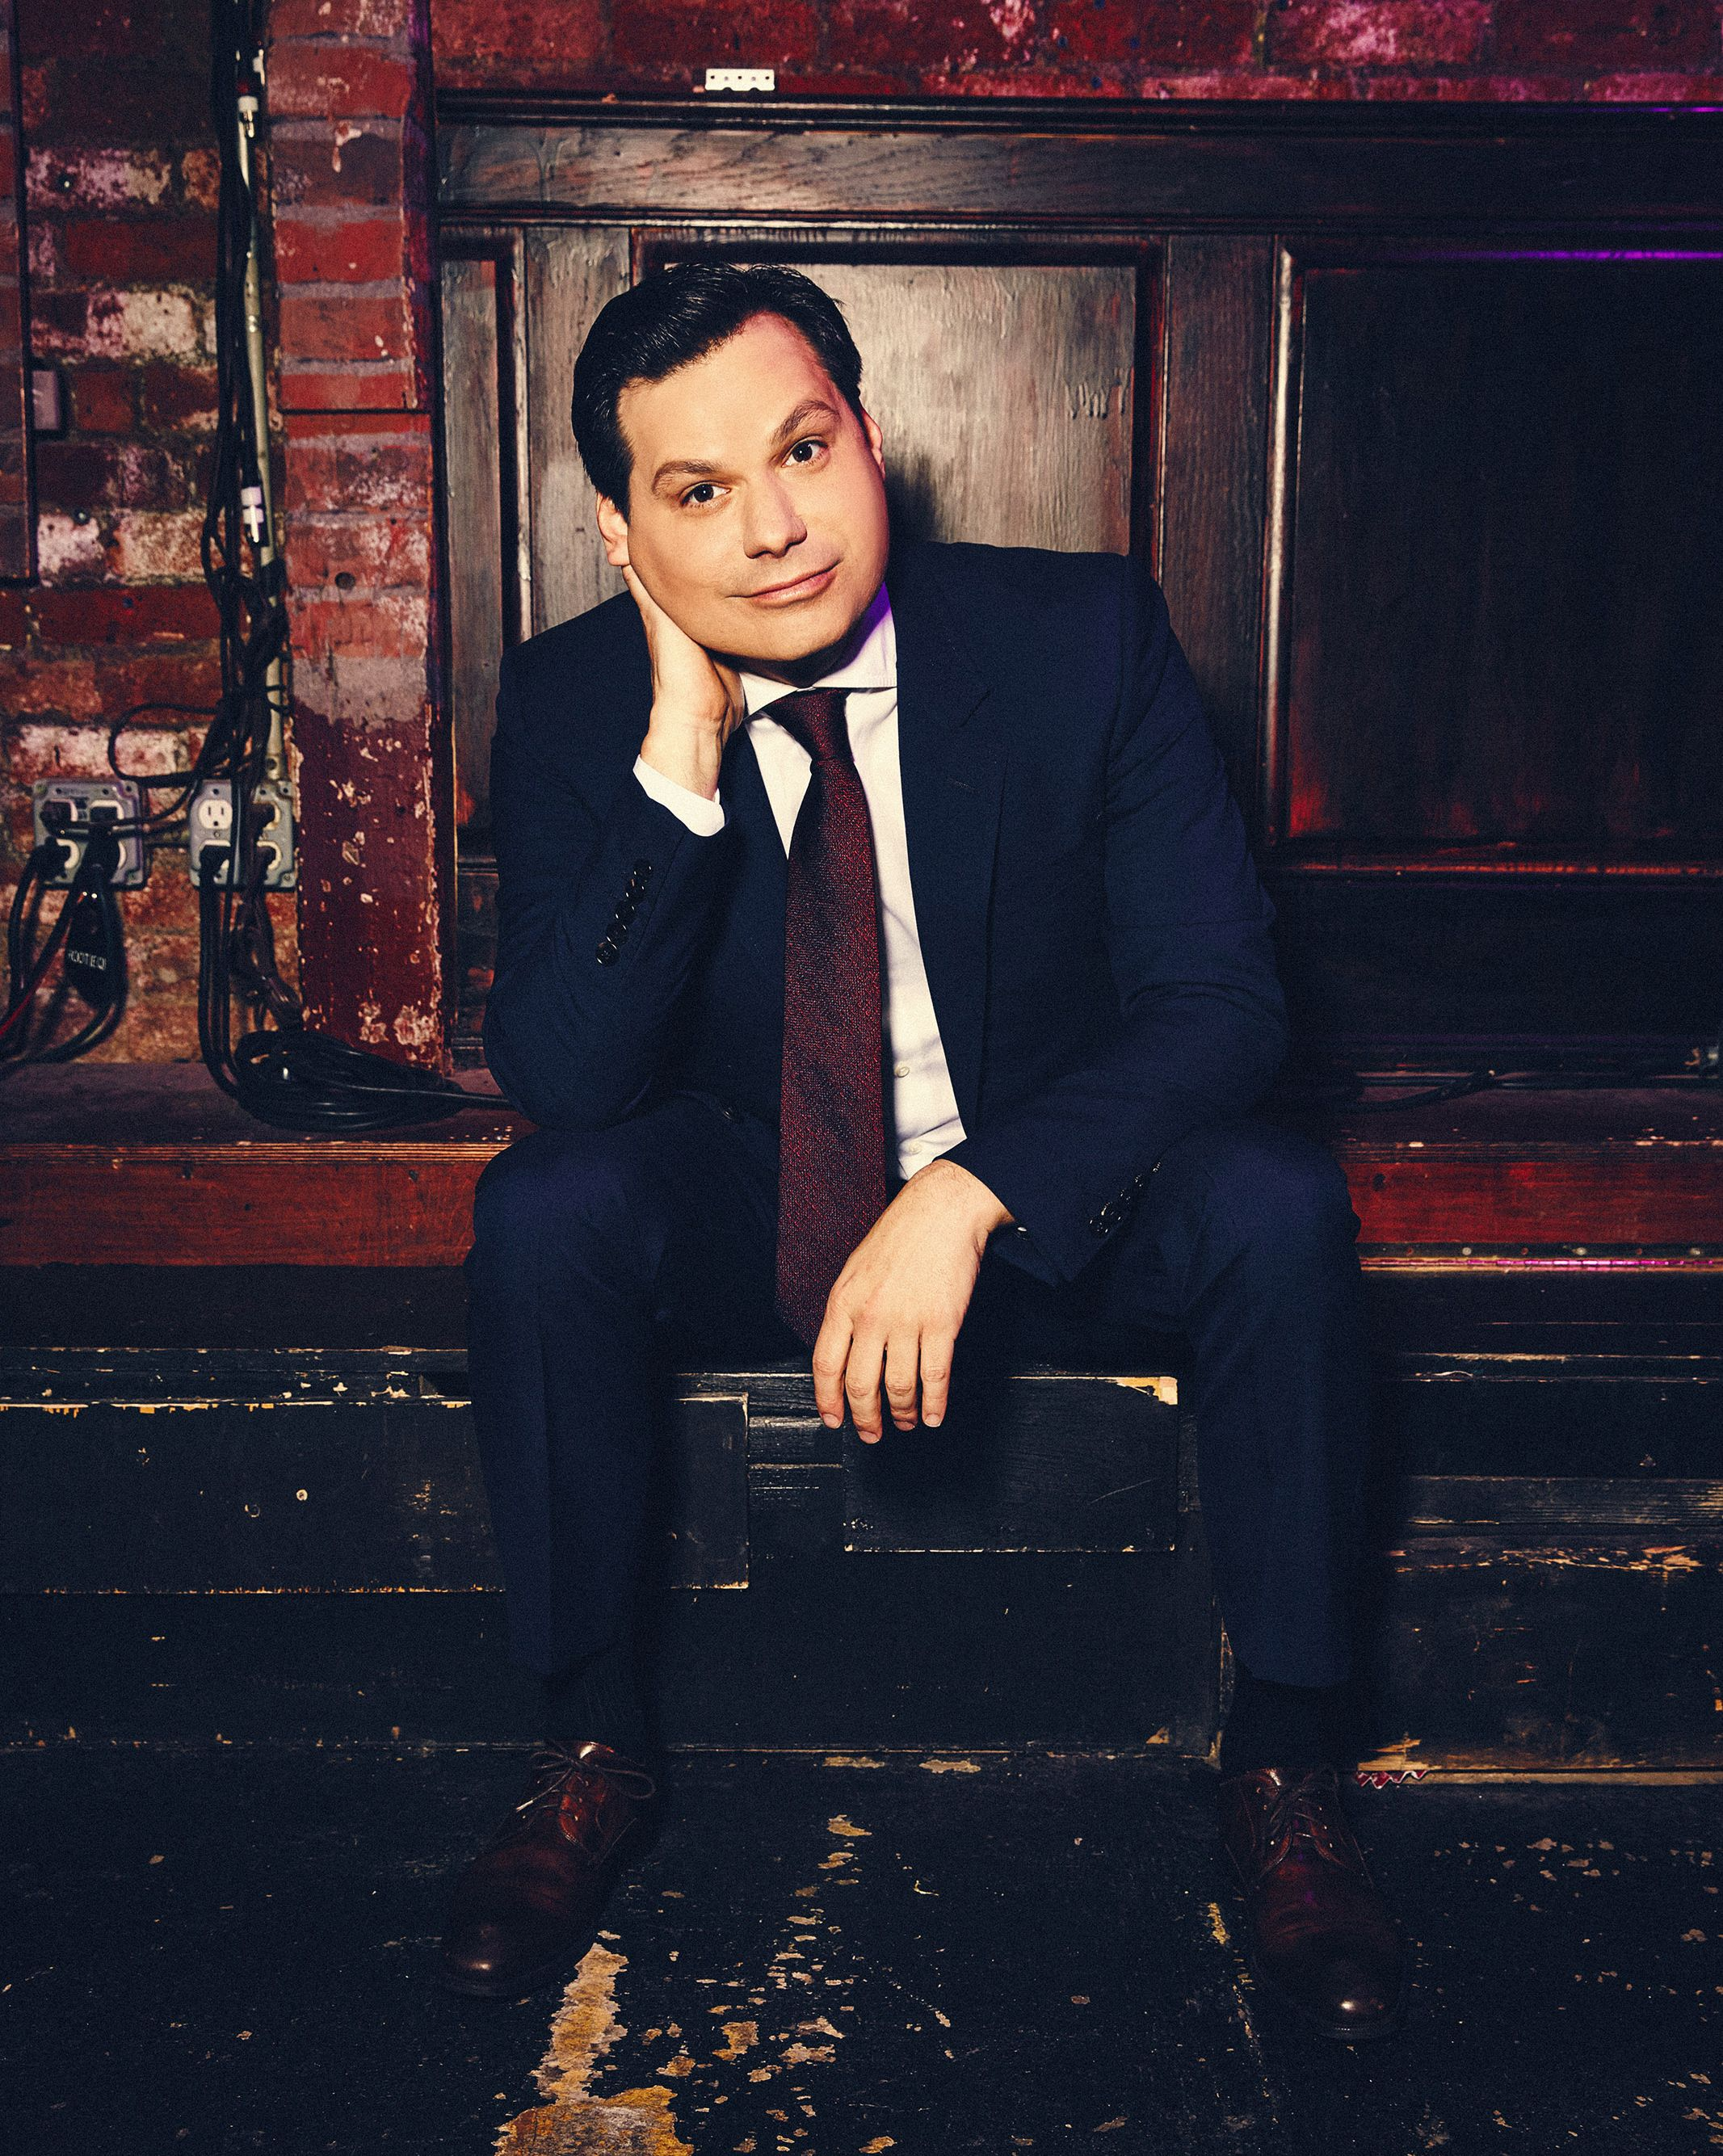 For the First Time in His Life, Michael Ian Black Isn't Sure What to Say